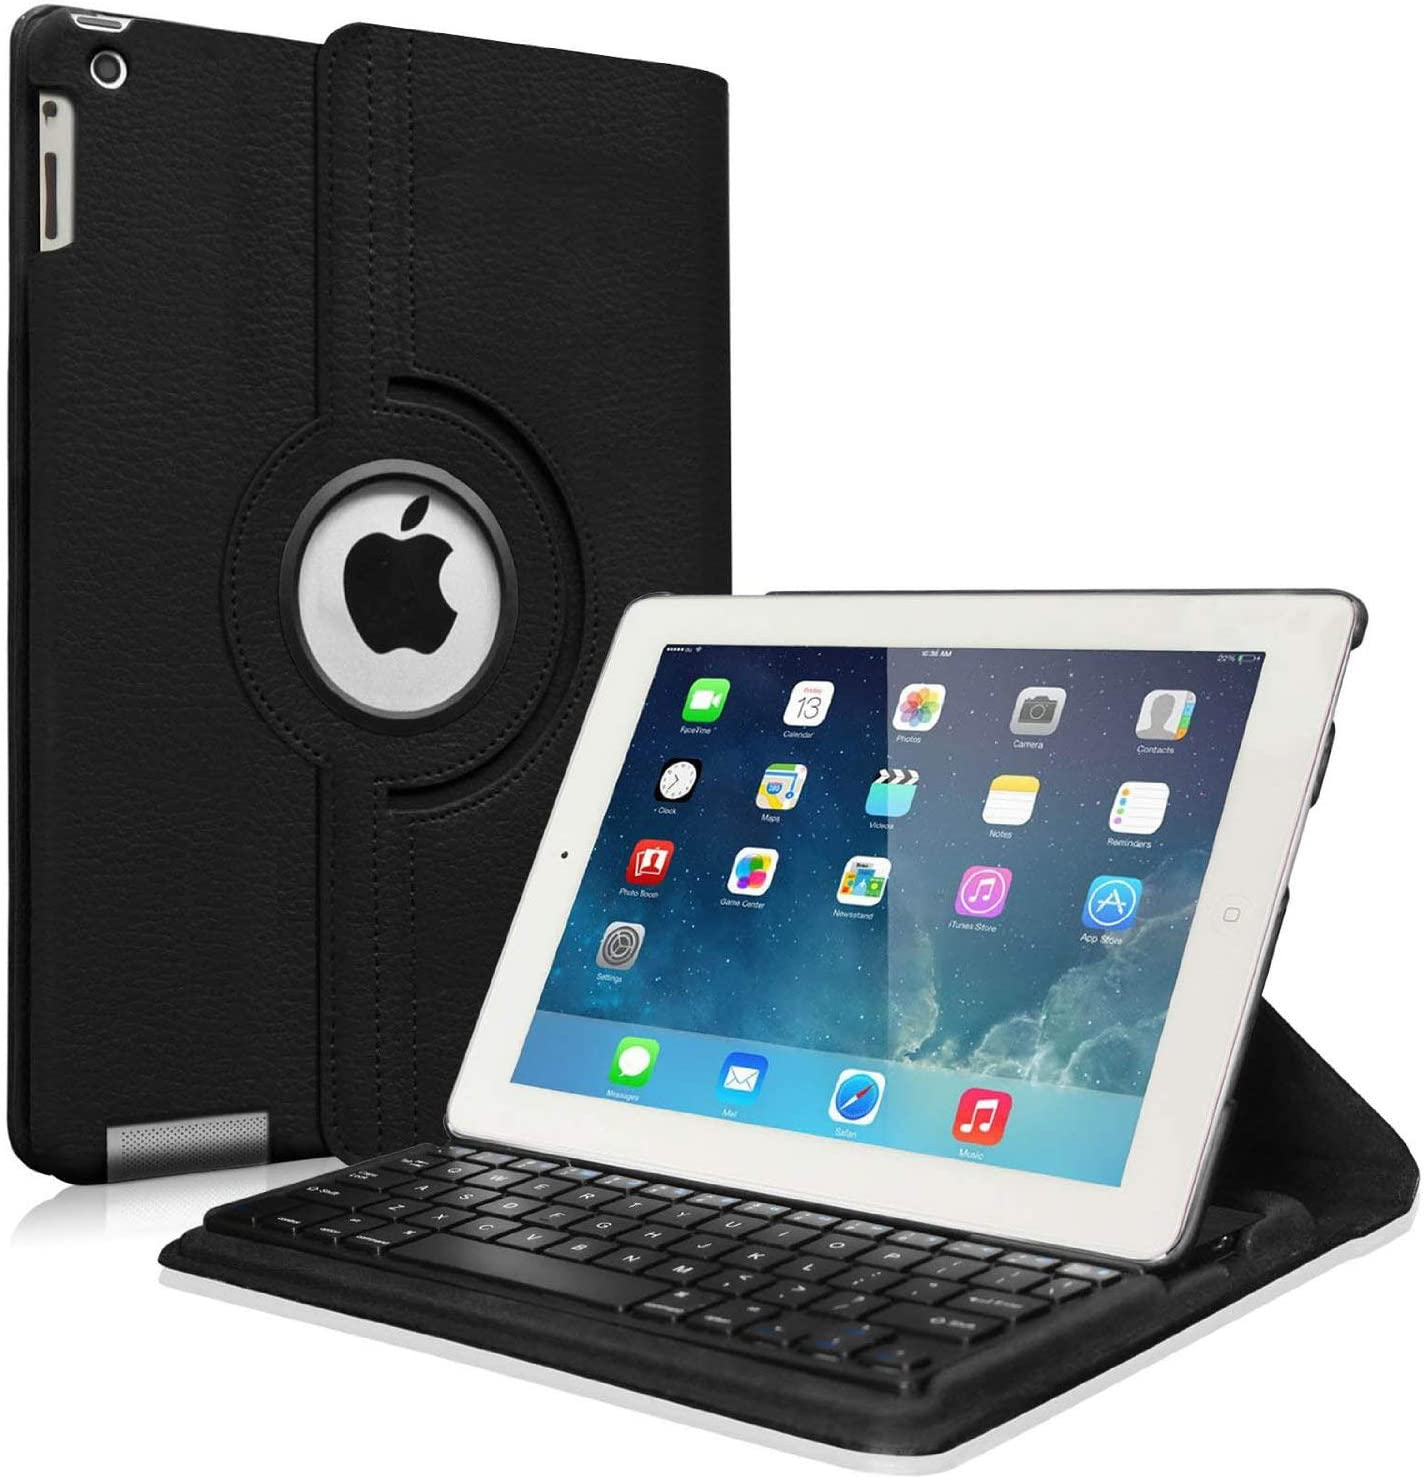 Fintie Rotating Keyboard Case for iPad 4 3 2 (Old Model)- 360 Degree Rotating Stand Cover with Built-in Wireless Bluetooth Keyboard for iPad 4th Gen with Retina Display, iPad 3 & iPad 2, Black